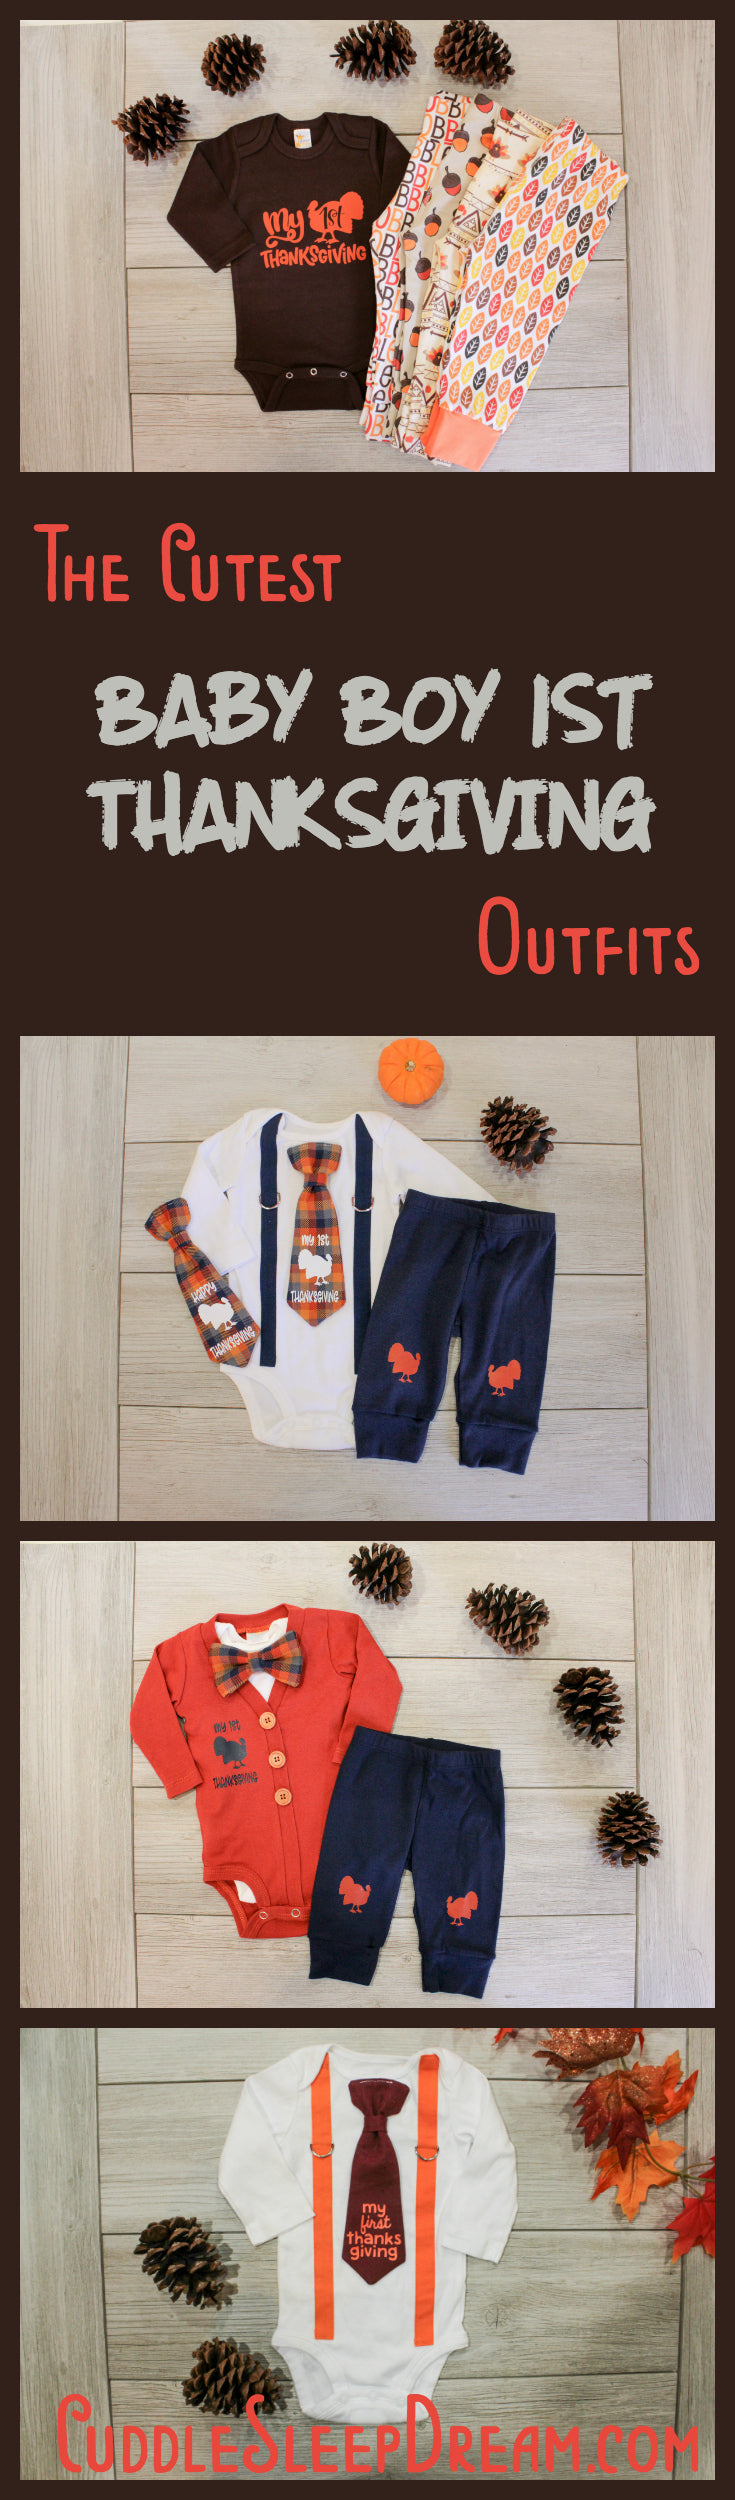 baby boy My 1st Thanksgiving Outfit ideas